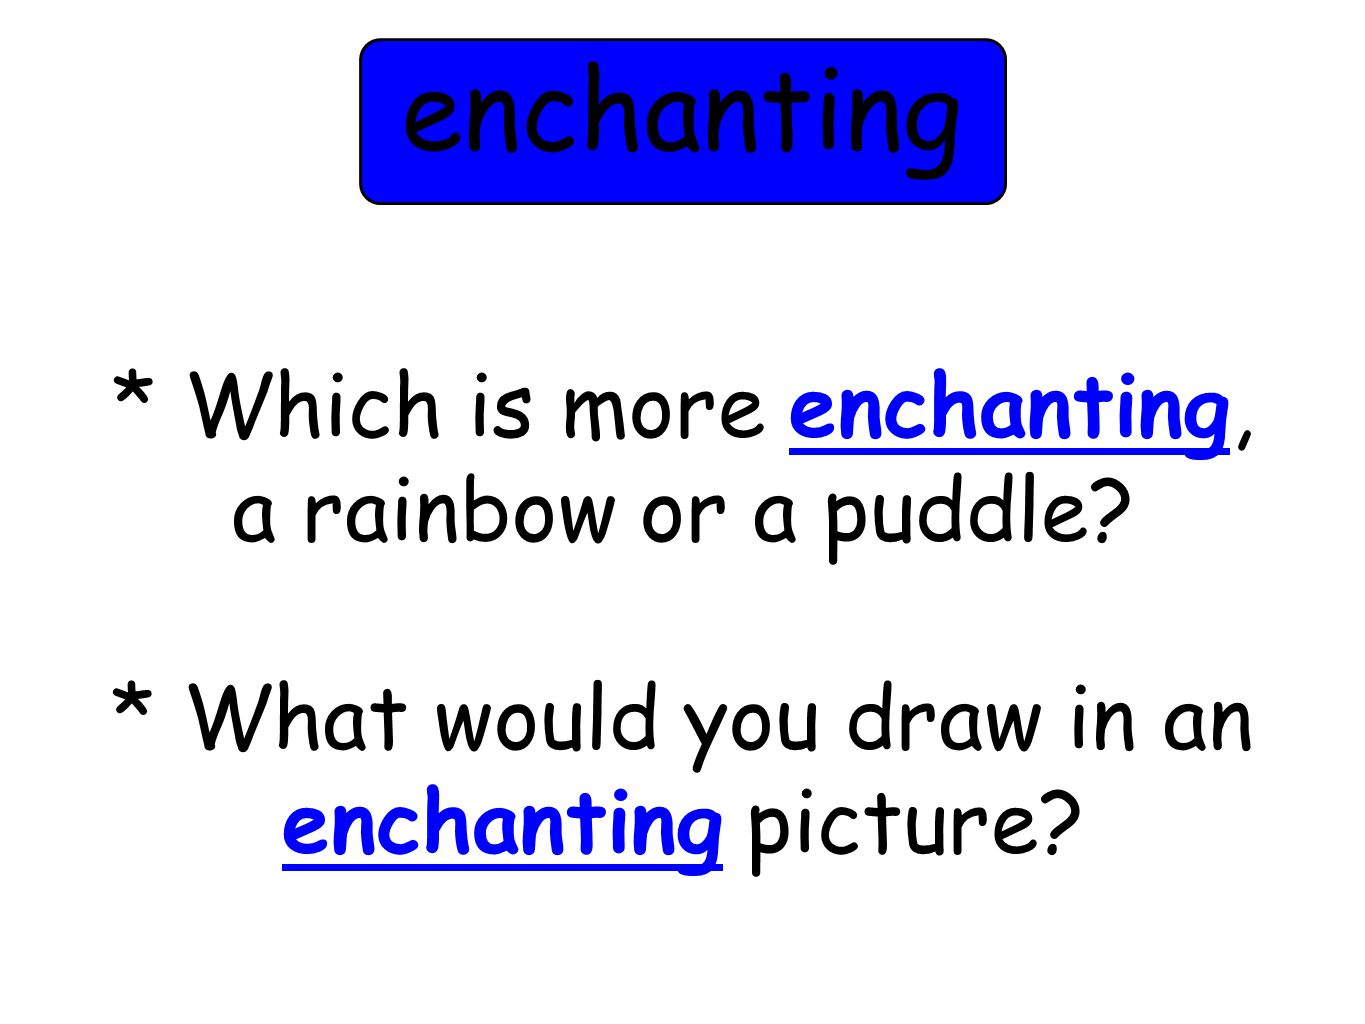 * Which is more enchanting, a rainbow or a puddle.